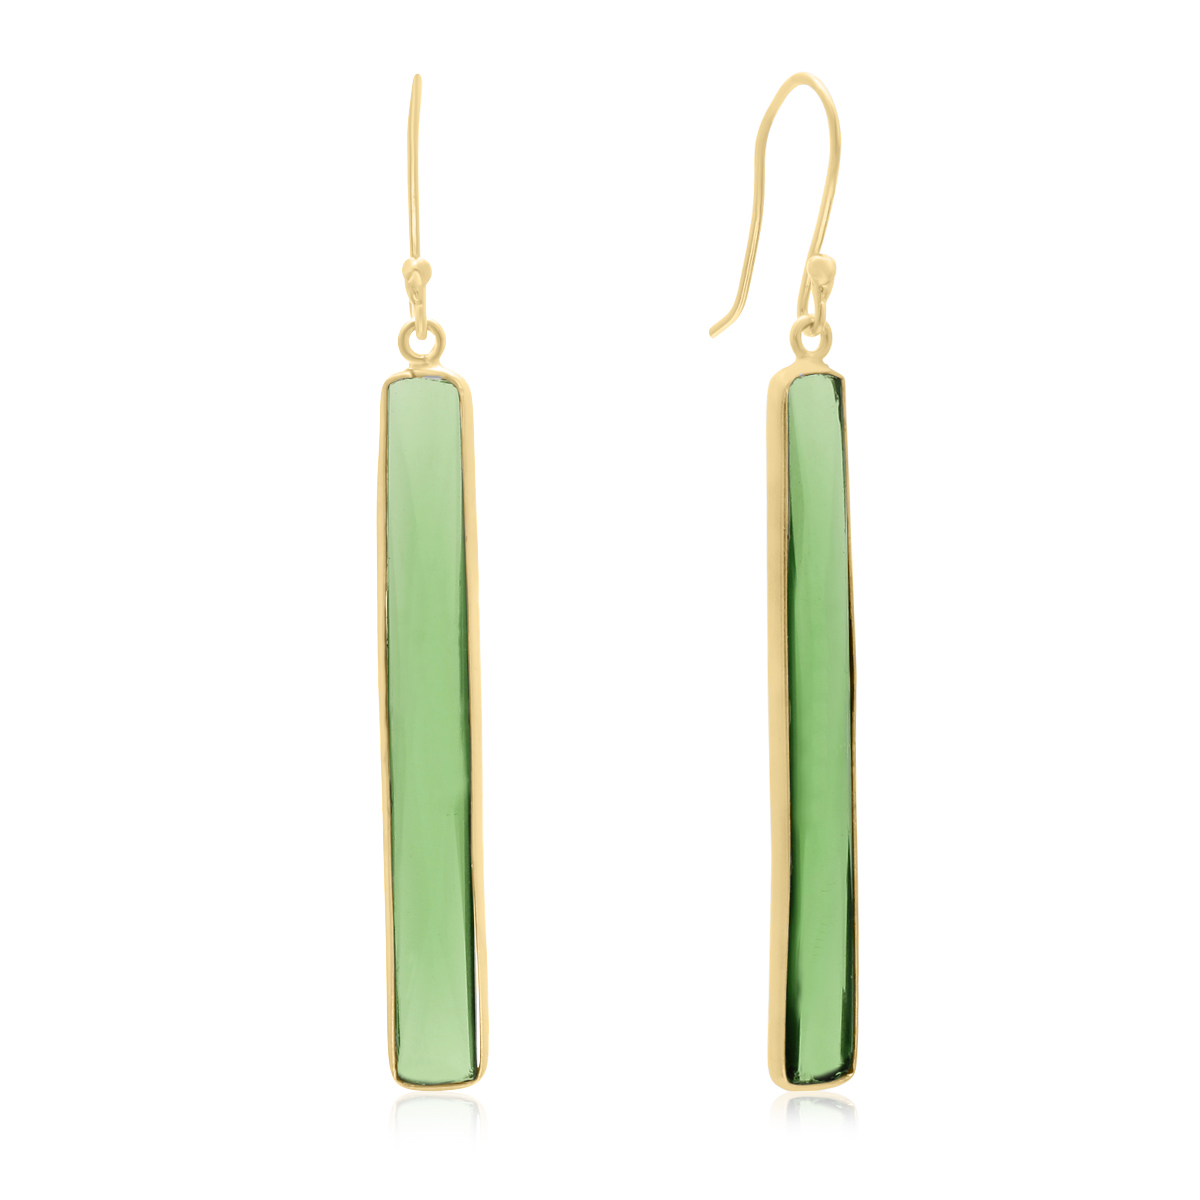 17 Carat Emerald Quartz Bar Earrings In